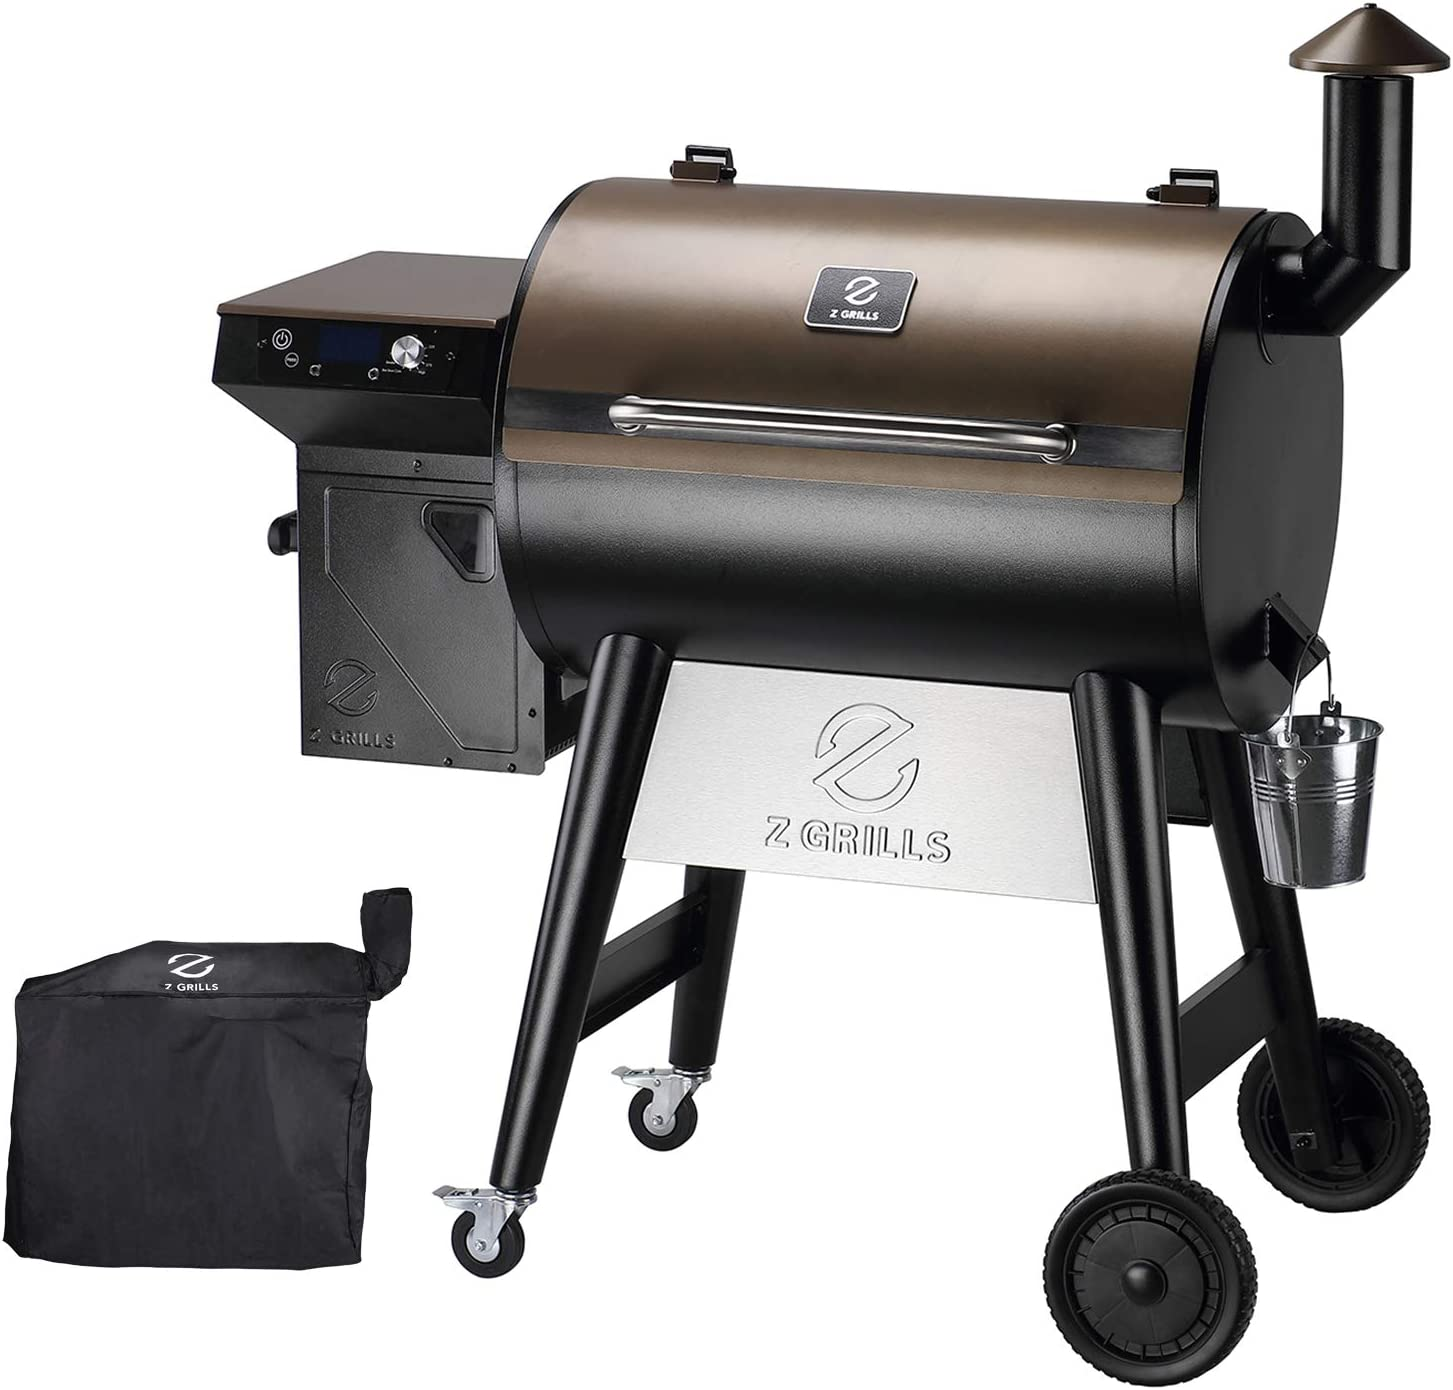 Z GRILLS 7002C 2021 Upgrade Wood Grill free shipping for Weekly update Smoker Outdo Pellet